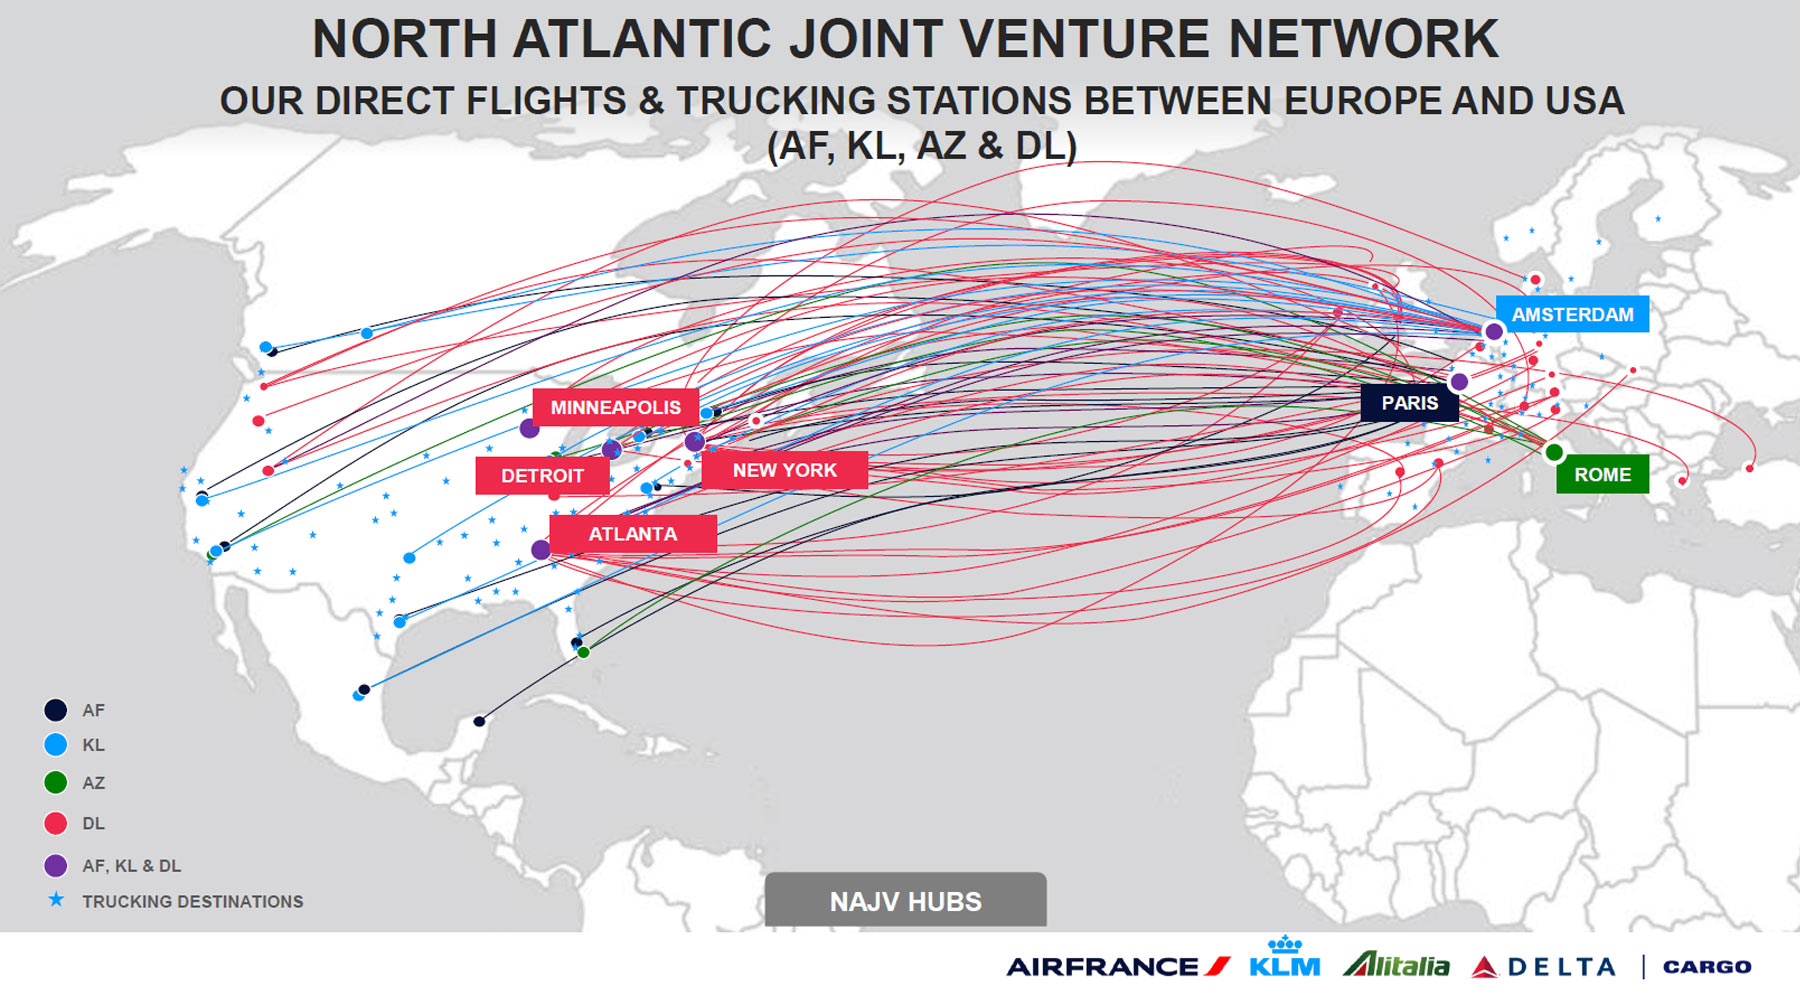 Air France Klm Martinair Cargo North Atlantic Joint Venture